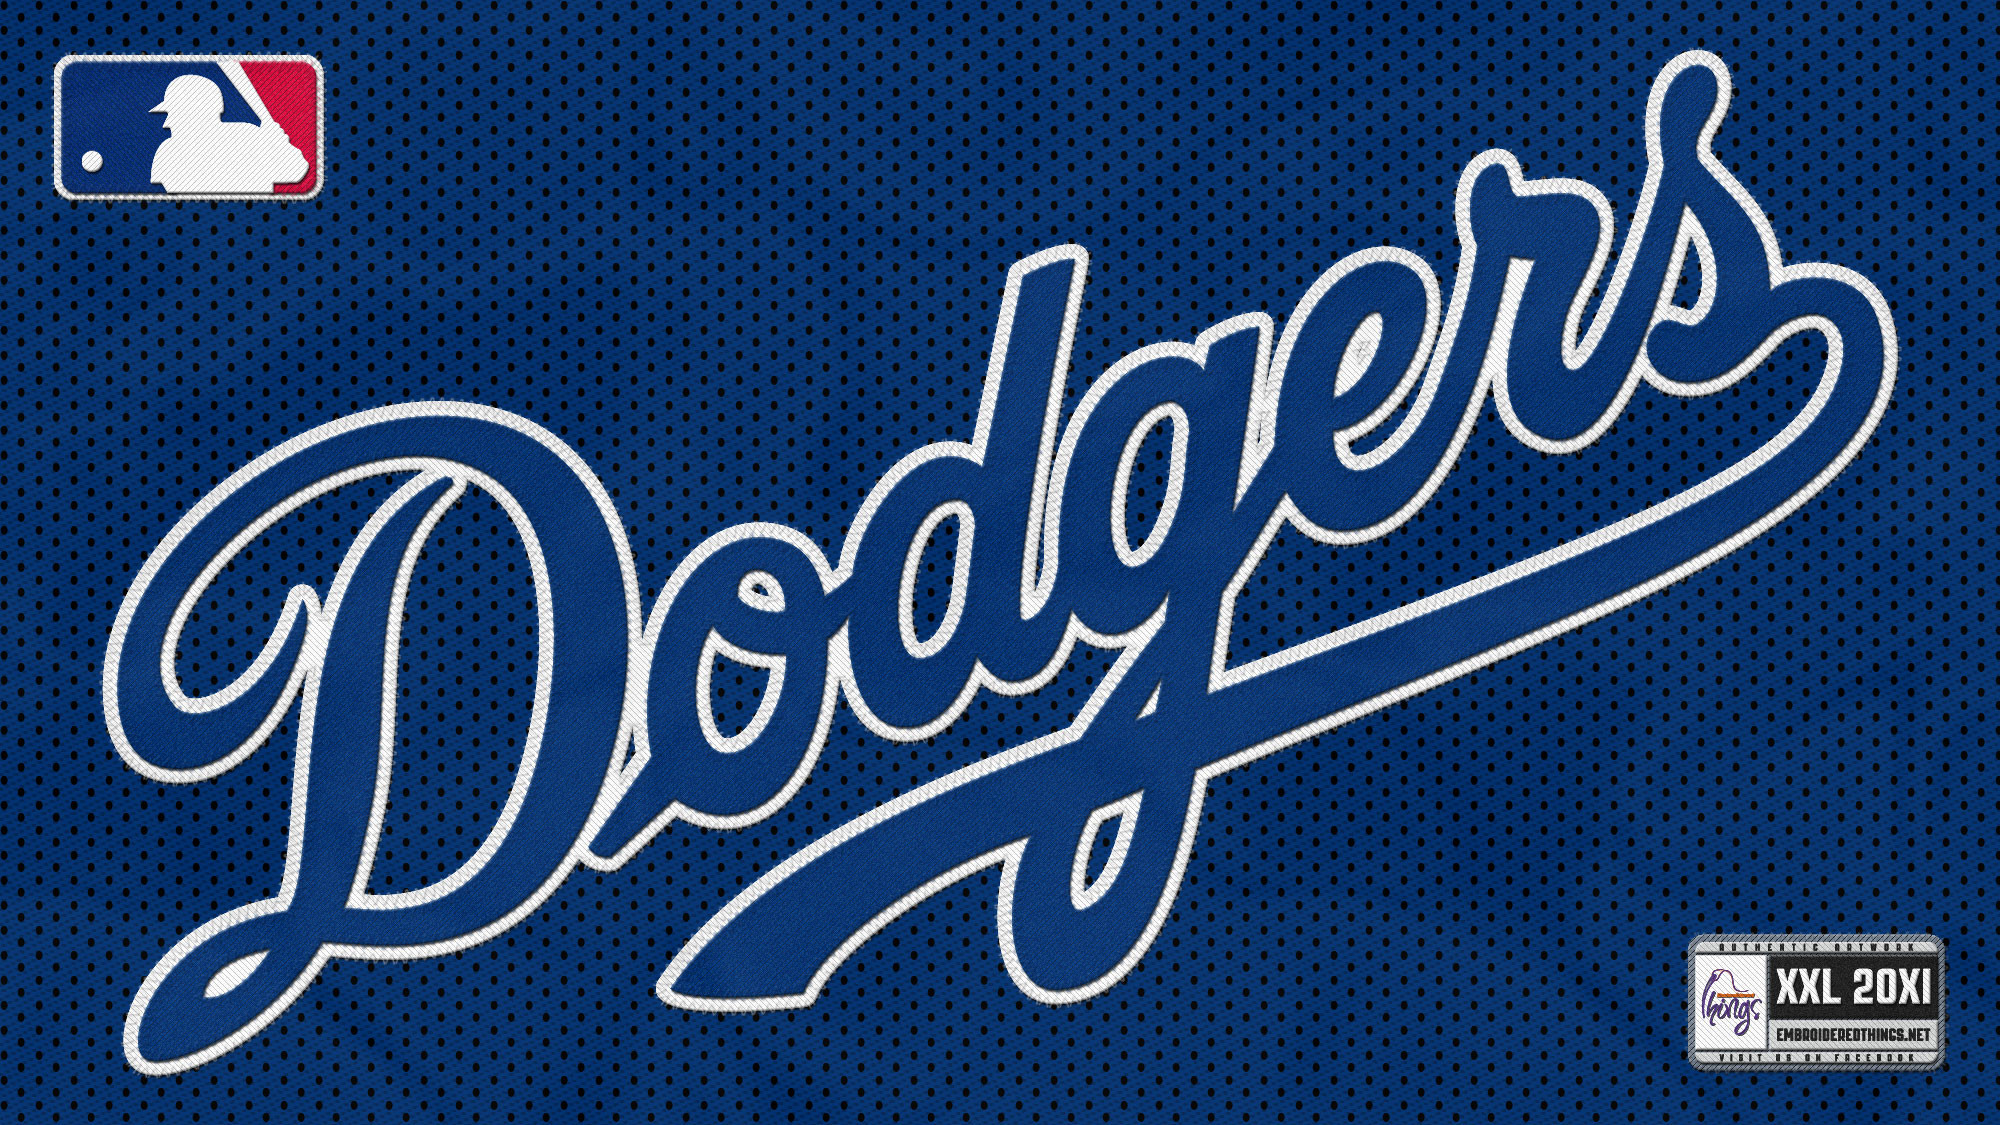 Dodger logos wallpapers 64 images 2000x1125 dodgers wallpaper thecheapjerseys Choice Image